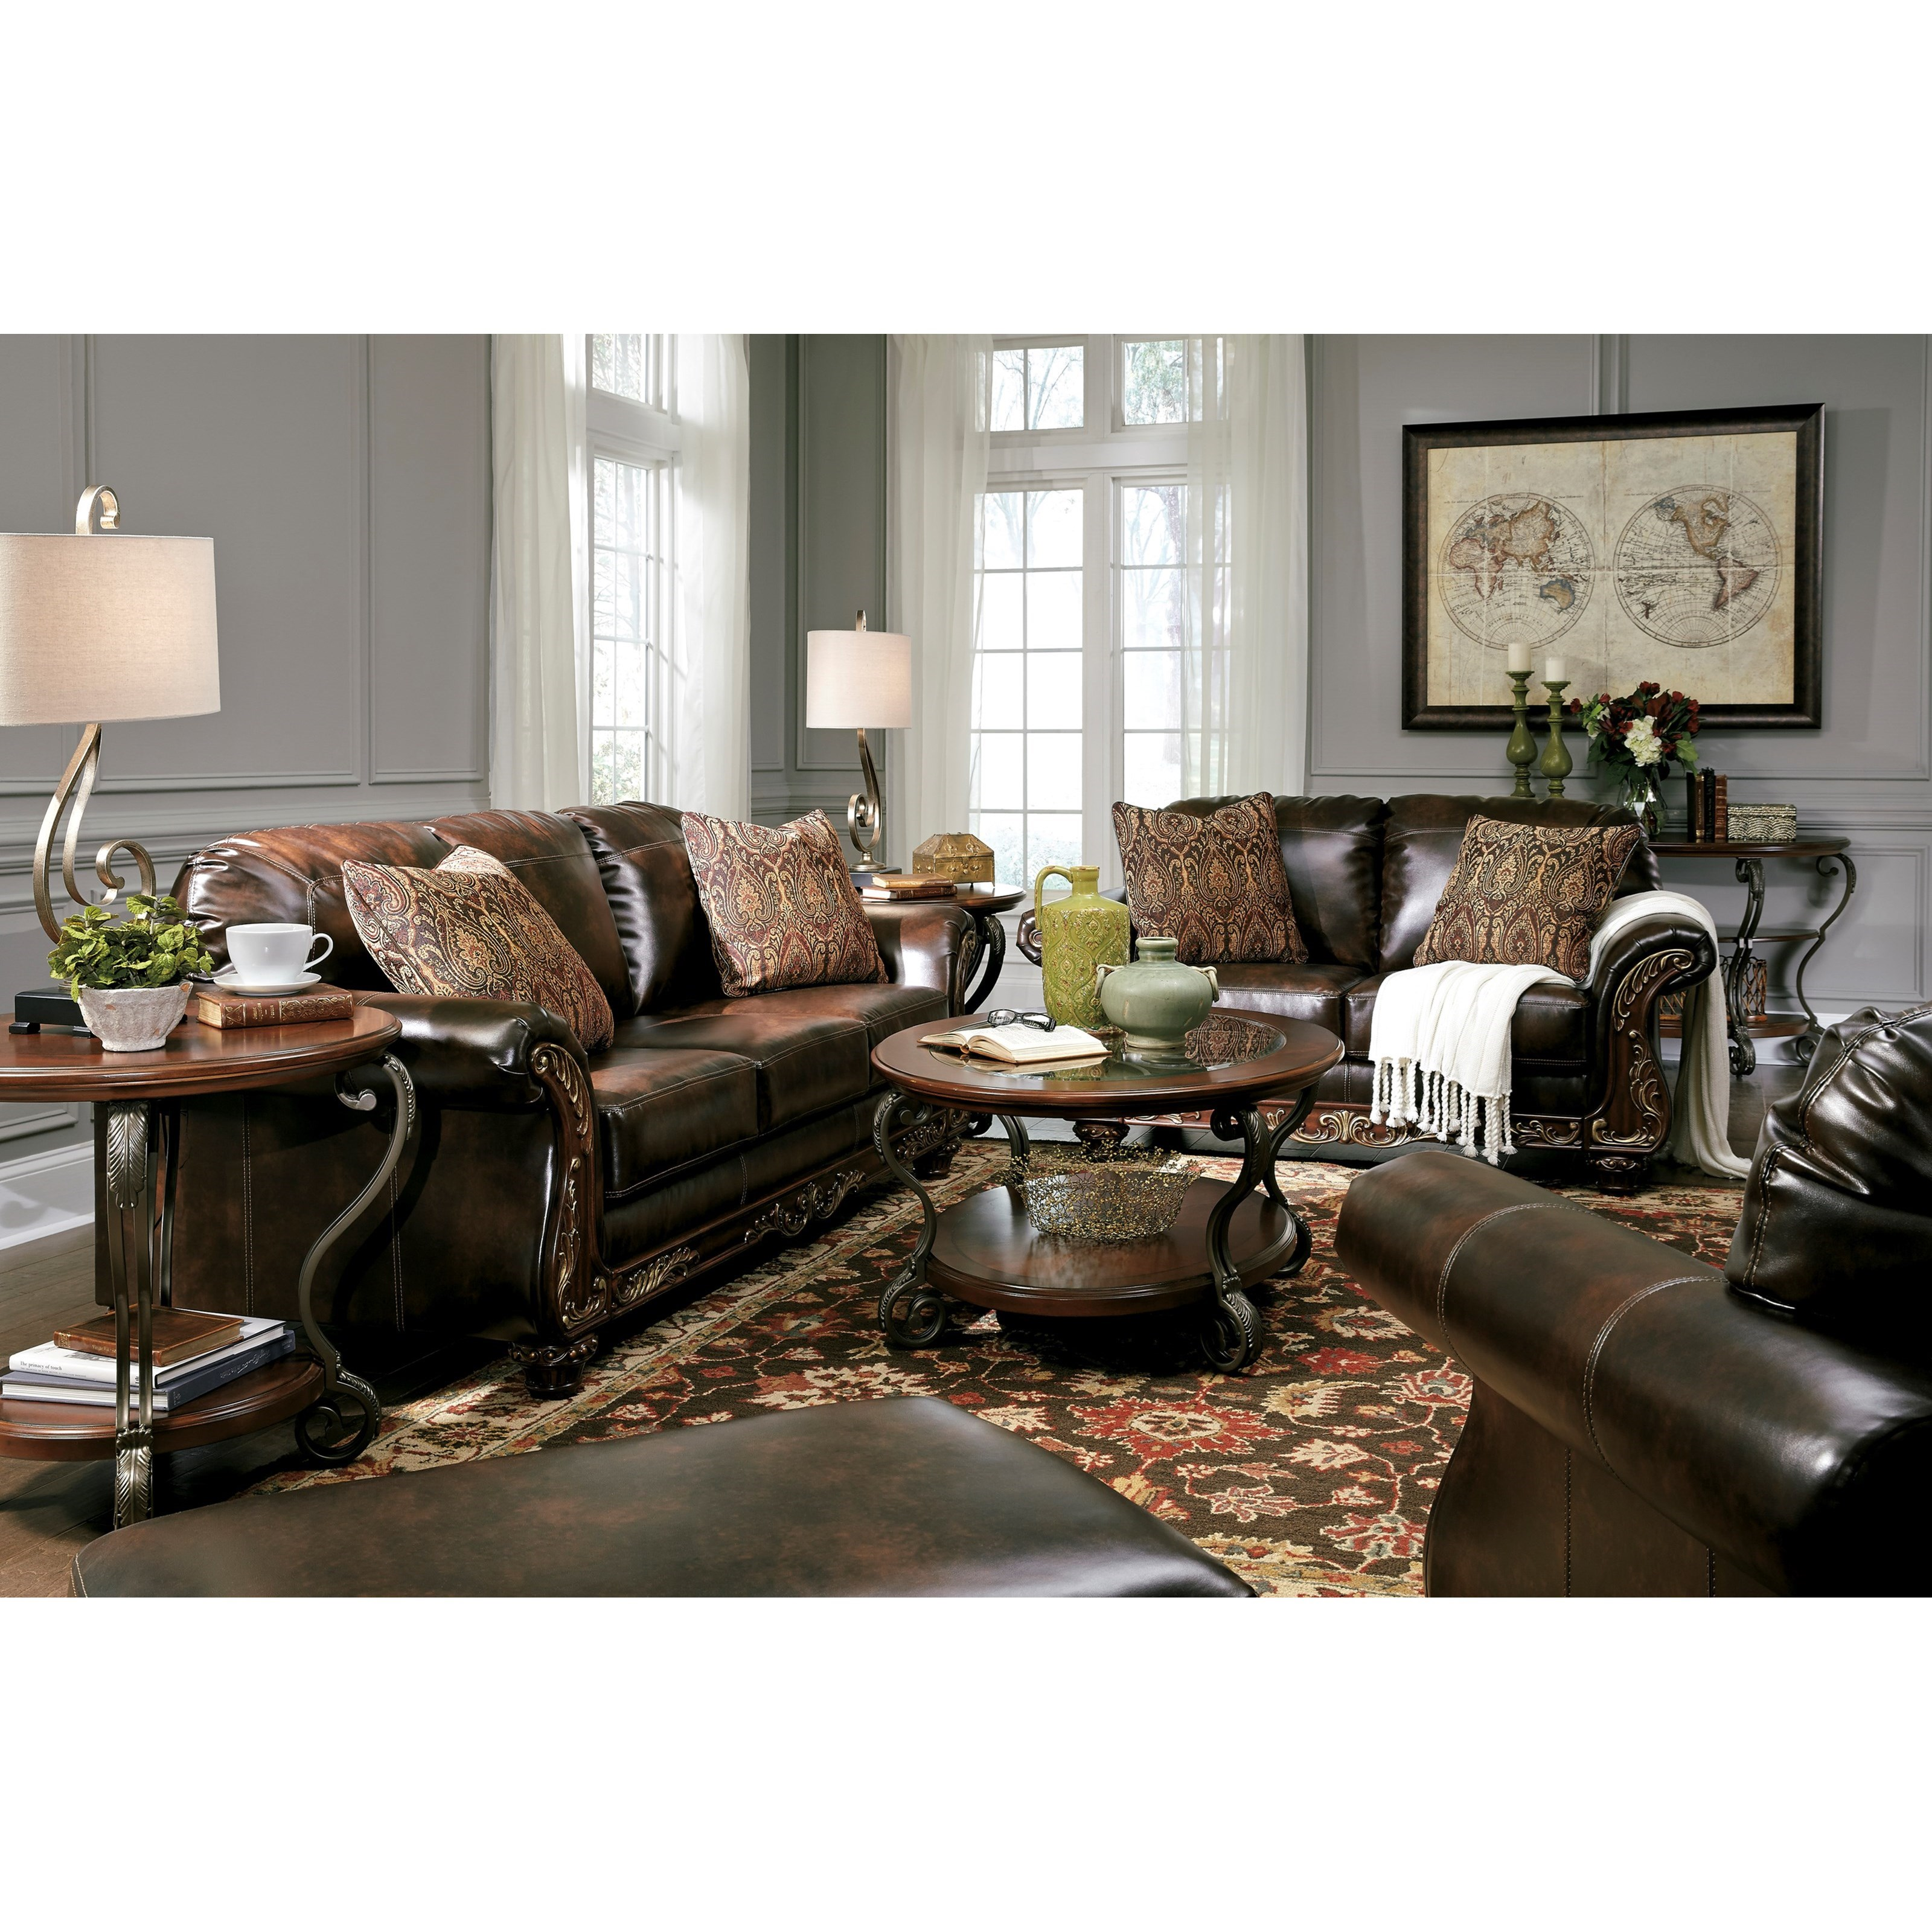 Signature Design by Ashley Vanceton Stationary Living Room Group - Item Number: 67402 Living Room Group 2